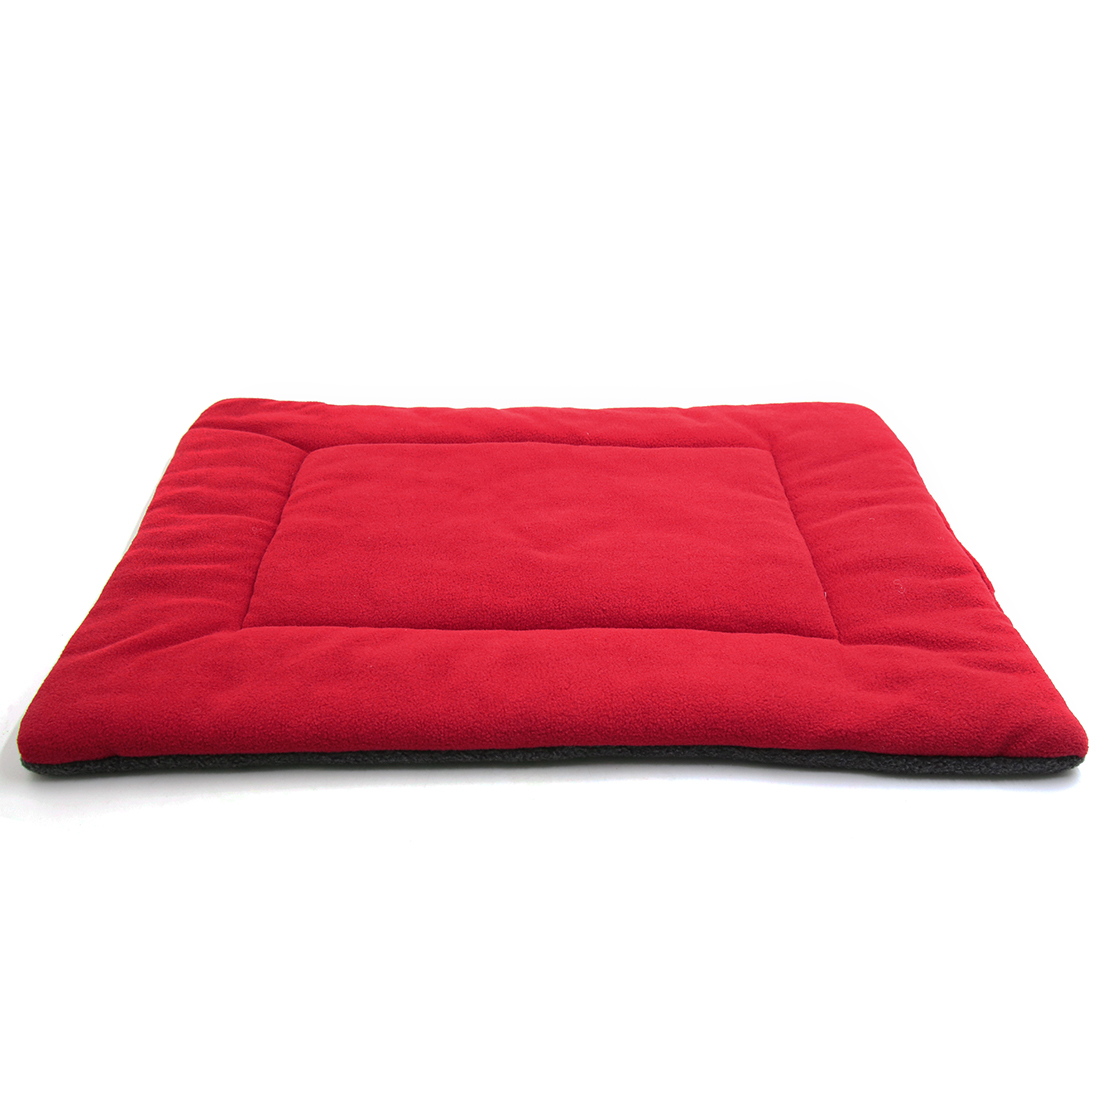 Fleece Reversible Mat Cushion Pad Bed for Dog Cat Puppy Pet Red S